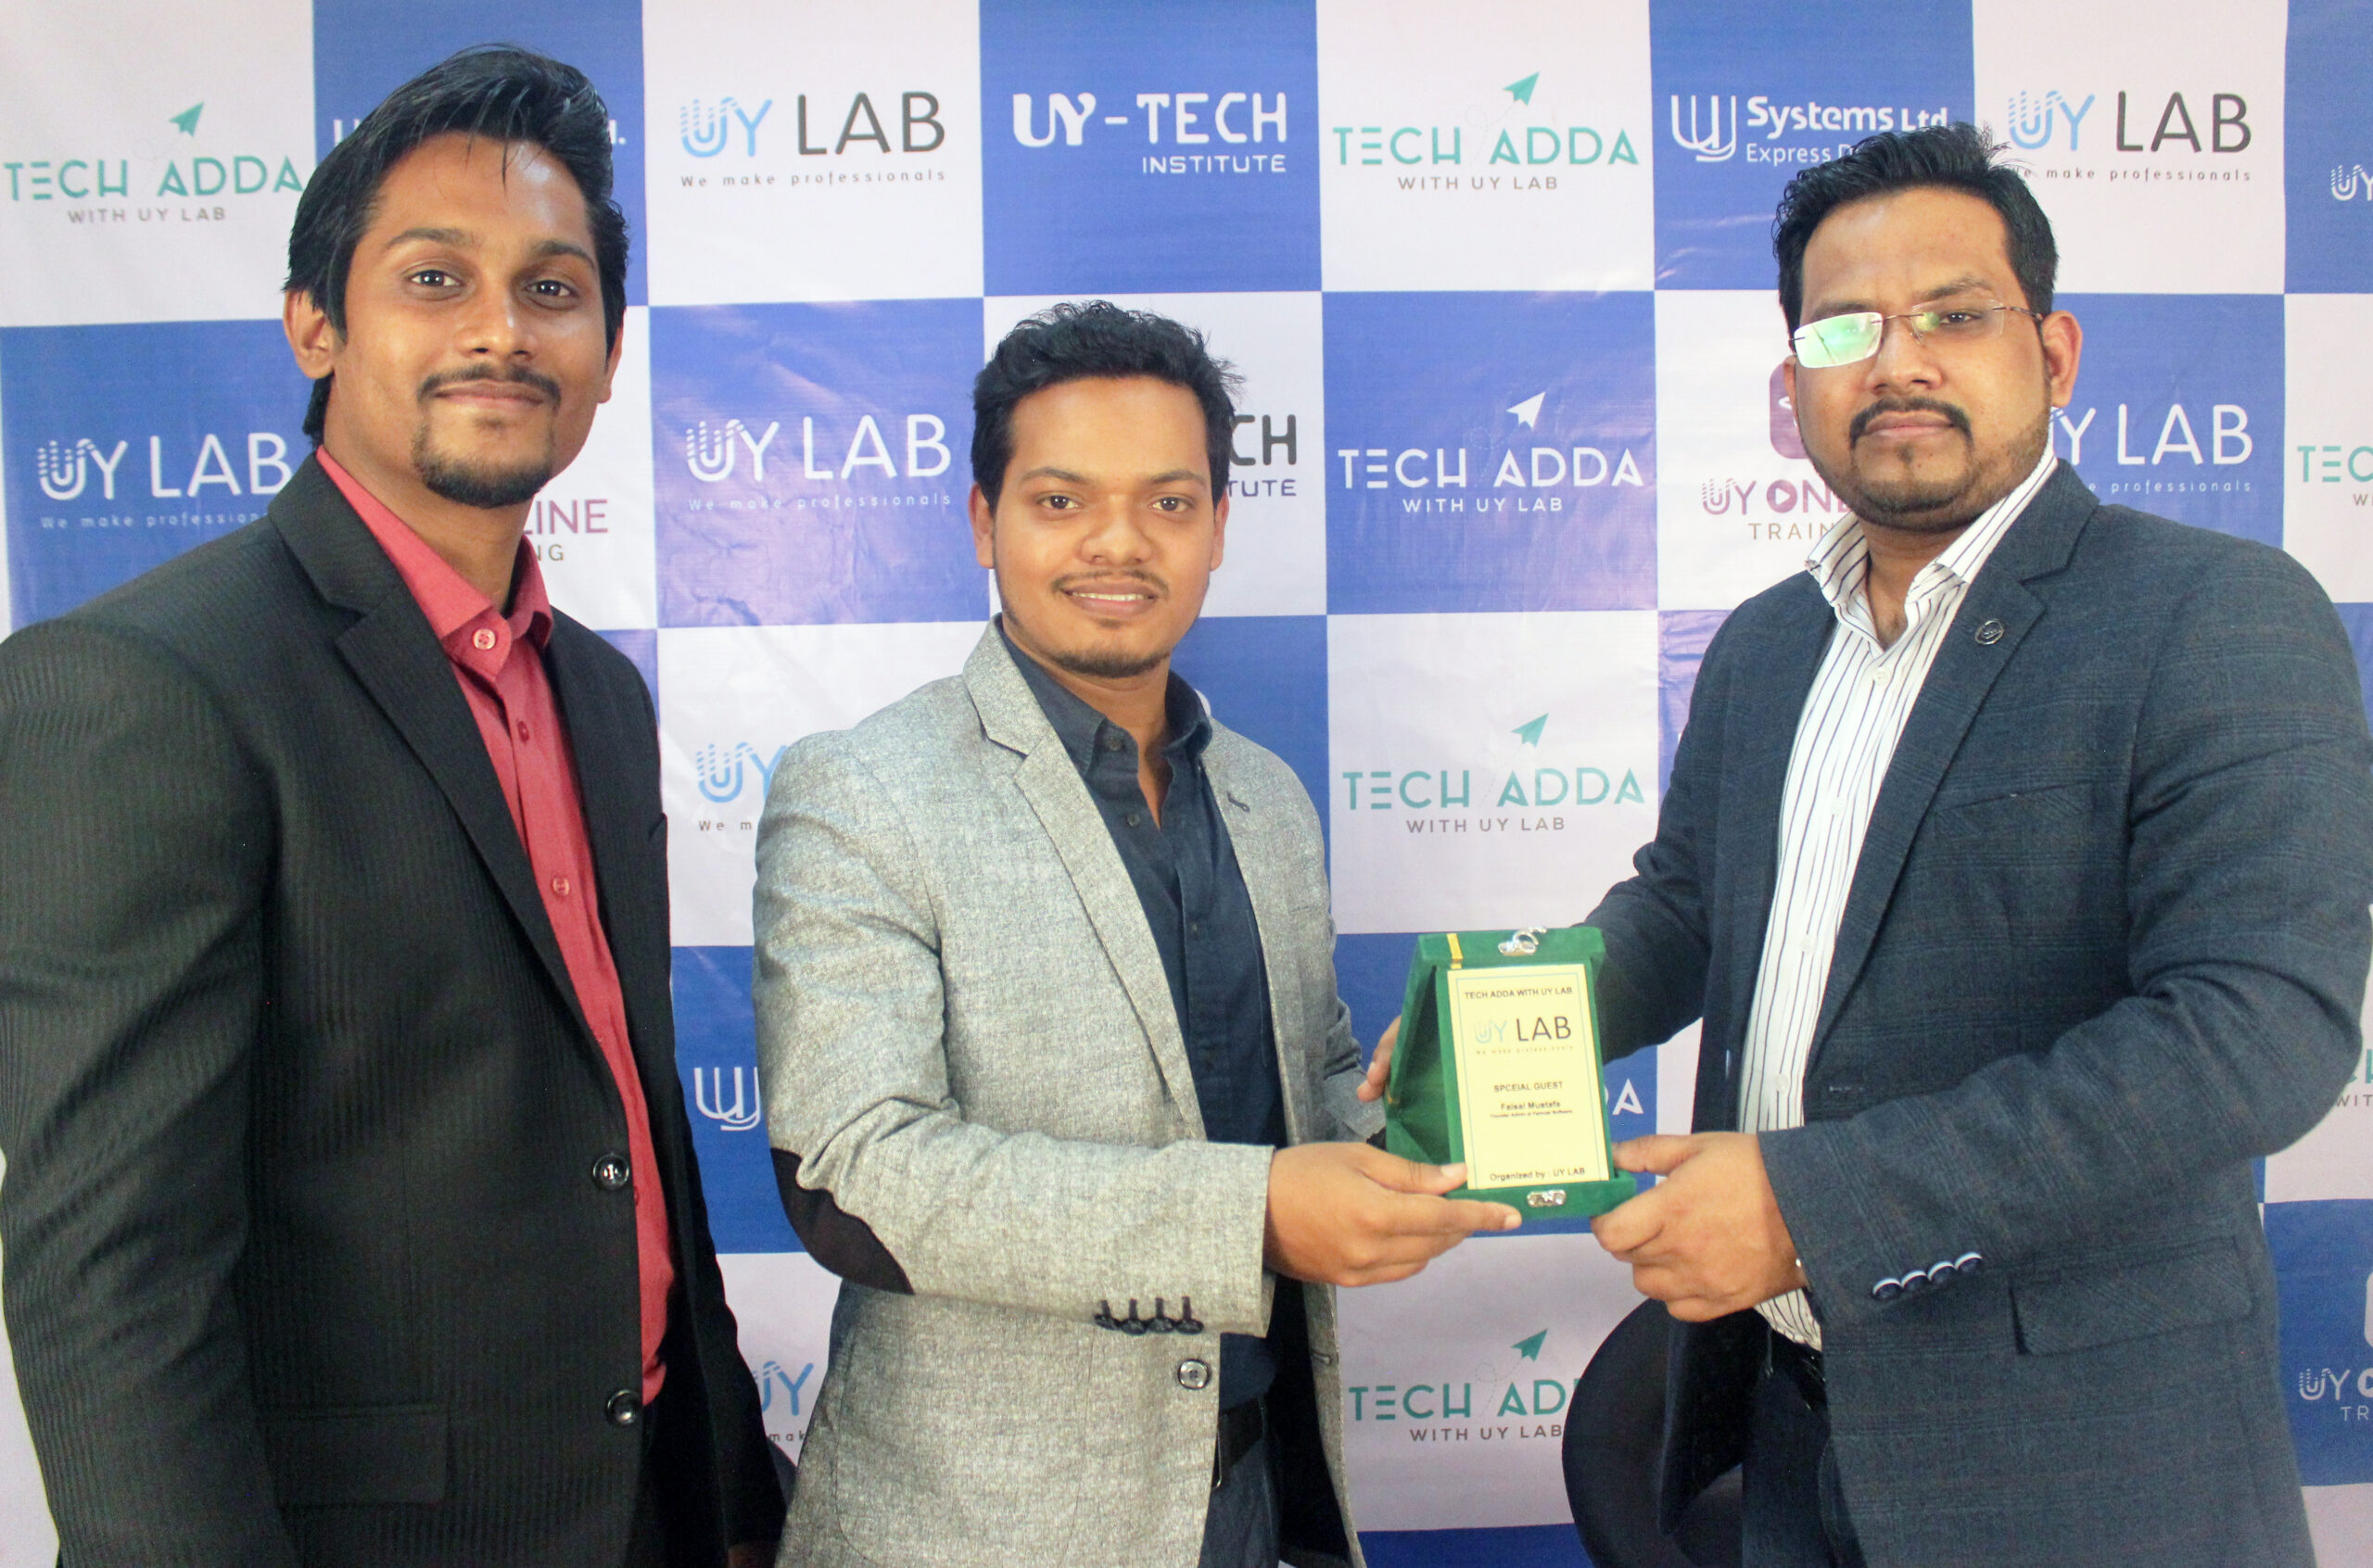 Faisal Mustafa Received Award as Special Guest from TECH ADDA WITH UY LAB